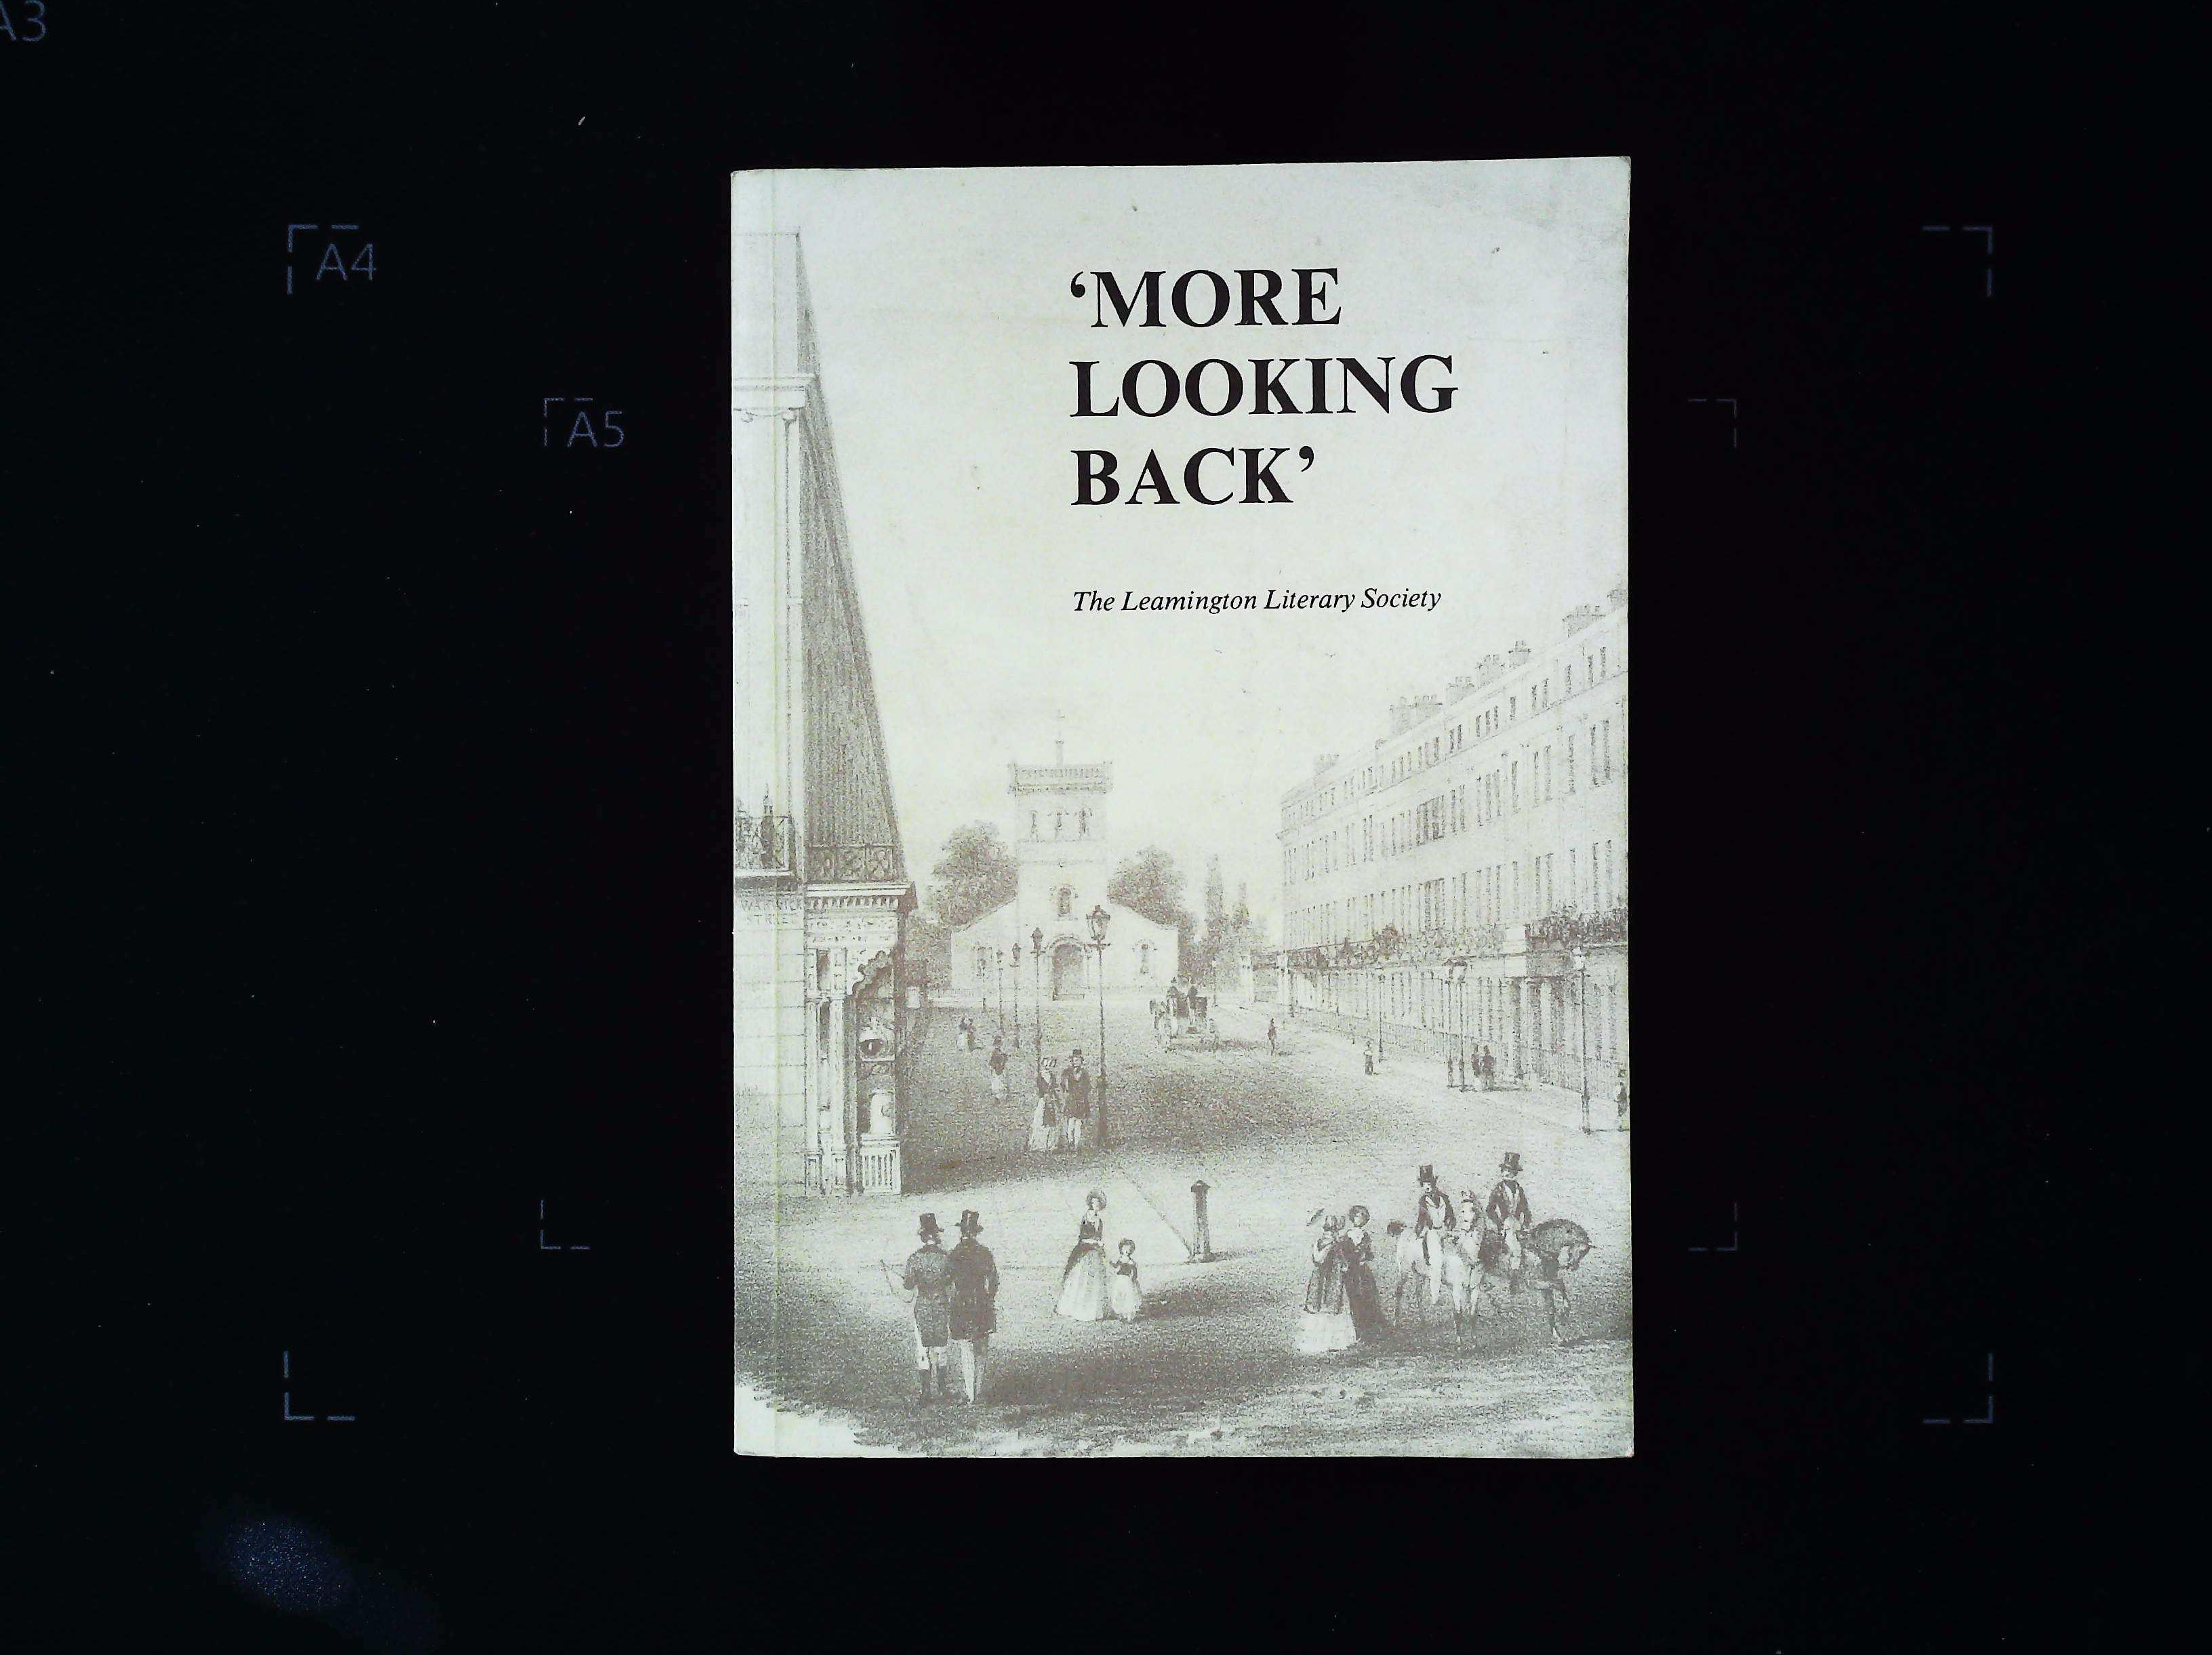 More Looking Back paperback book by The Leamington Literary Society. Published 1980. 181 pages.